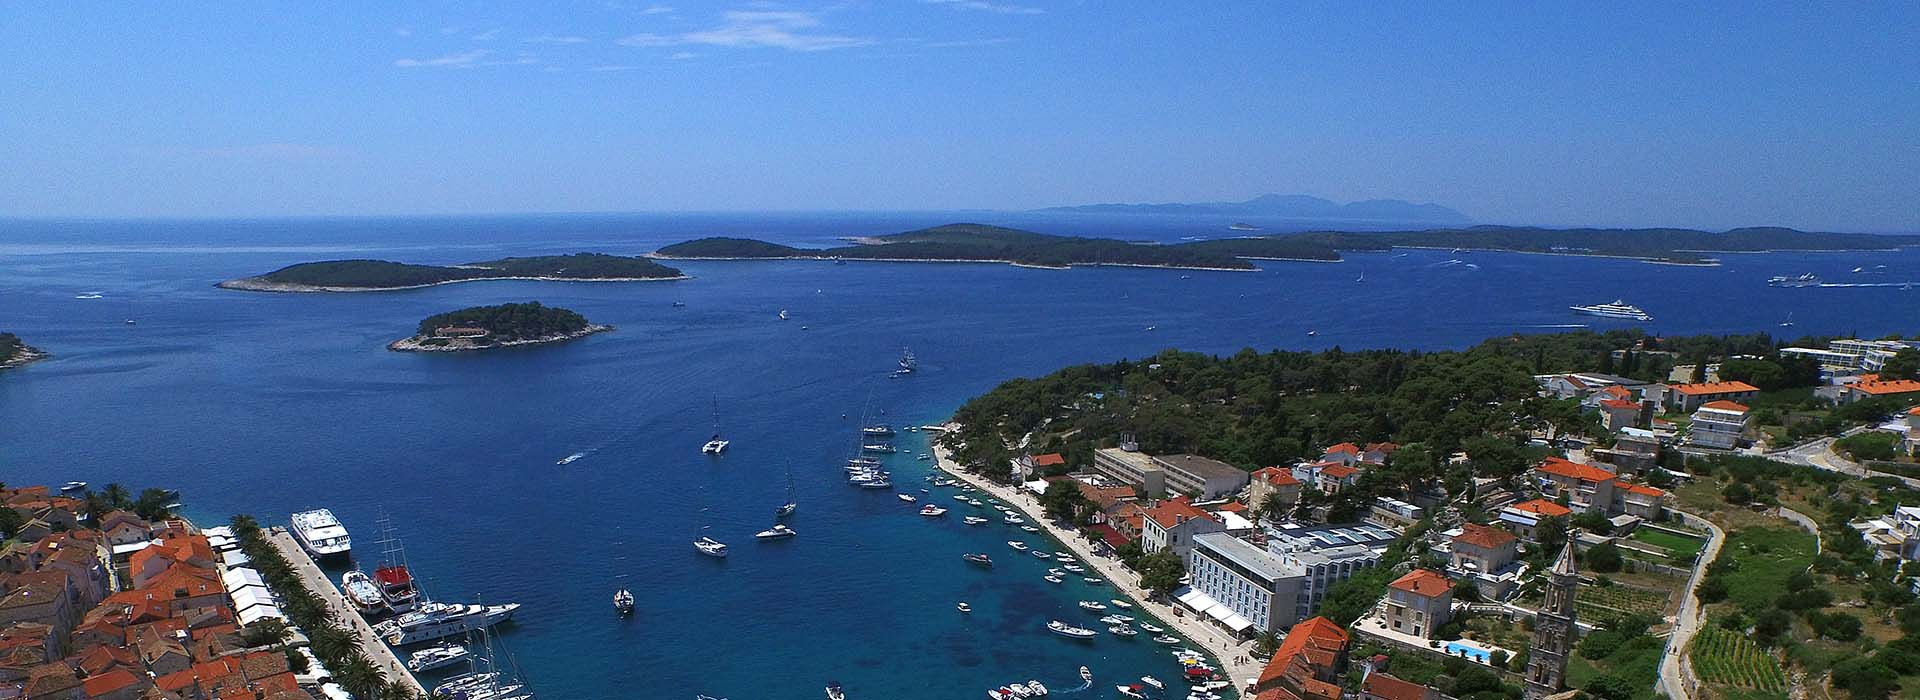 Hvar and Pakleni islands archipelago